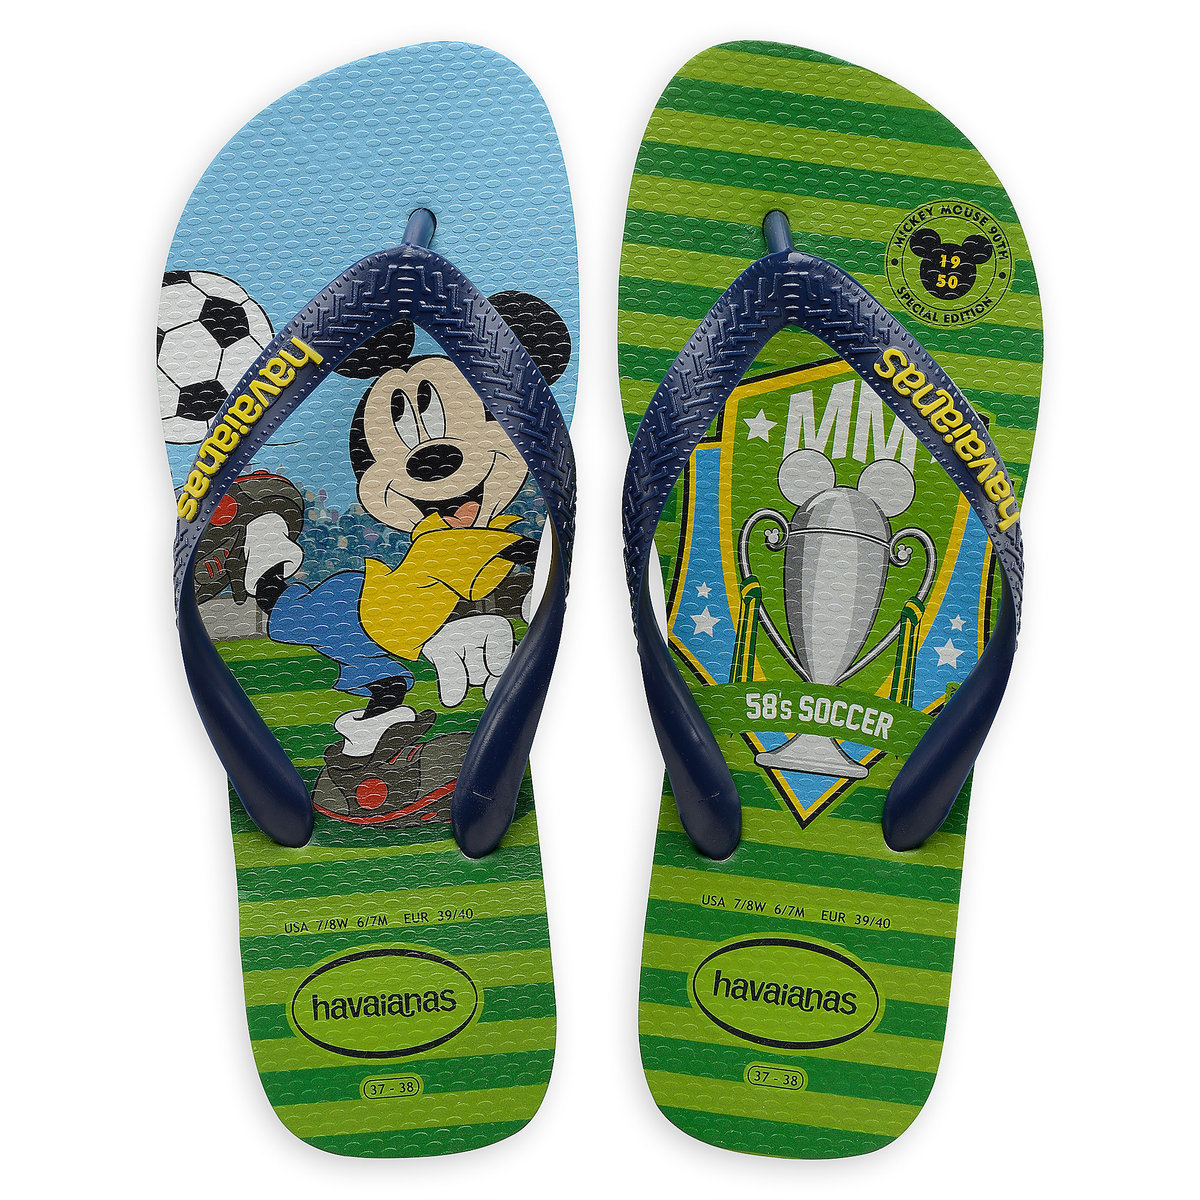 ab500a36571 Product Image of Mickey Mouse World Cup Flip Flops by Havaianas - 1950s   1